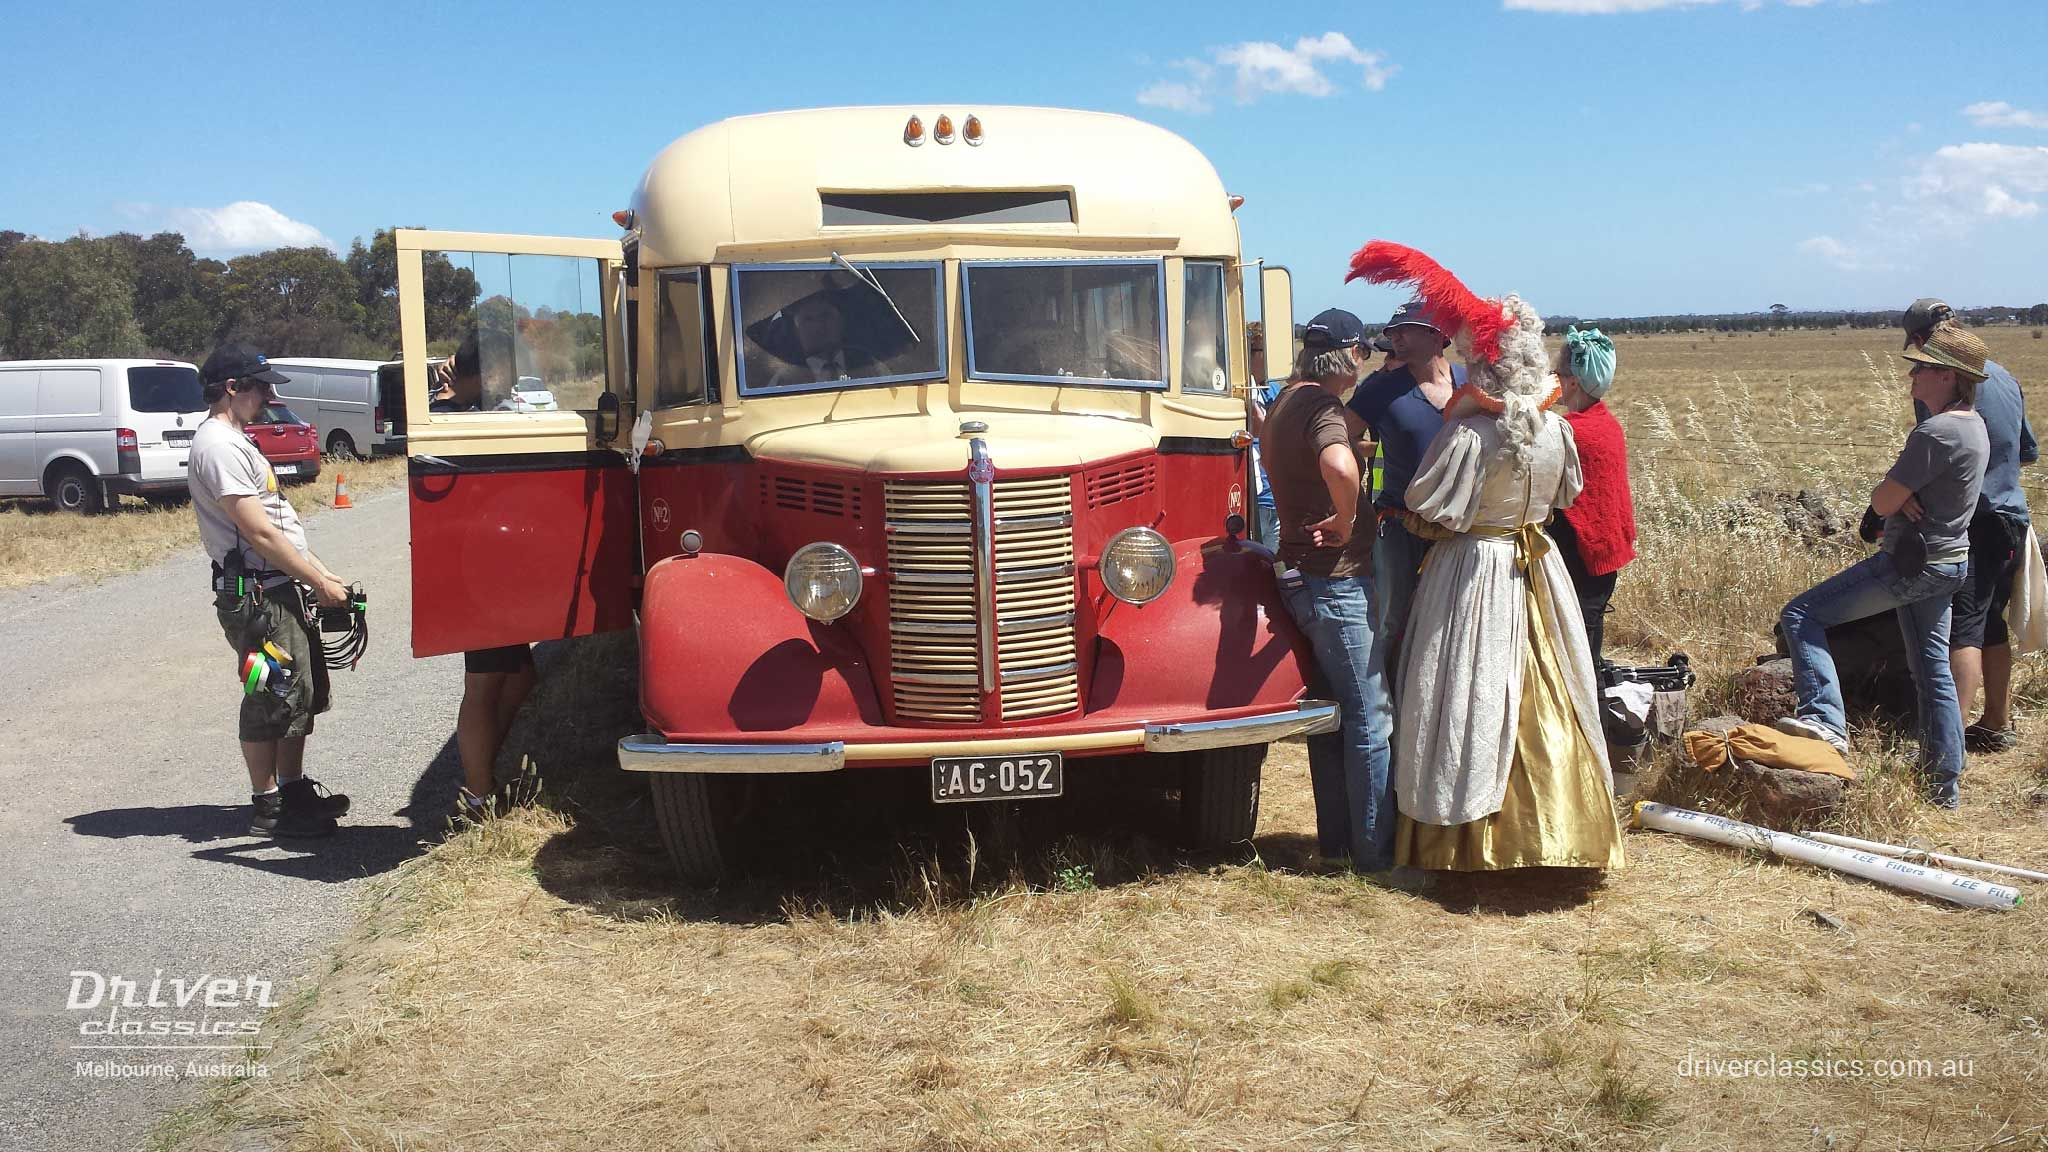 Bedford OB bus (1946 version), on the set of The Dressmaker movie. Cast & crew at front of vehicle.